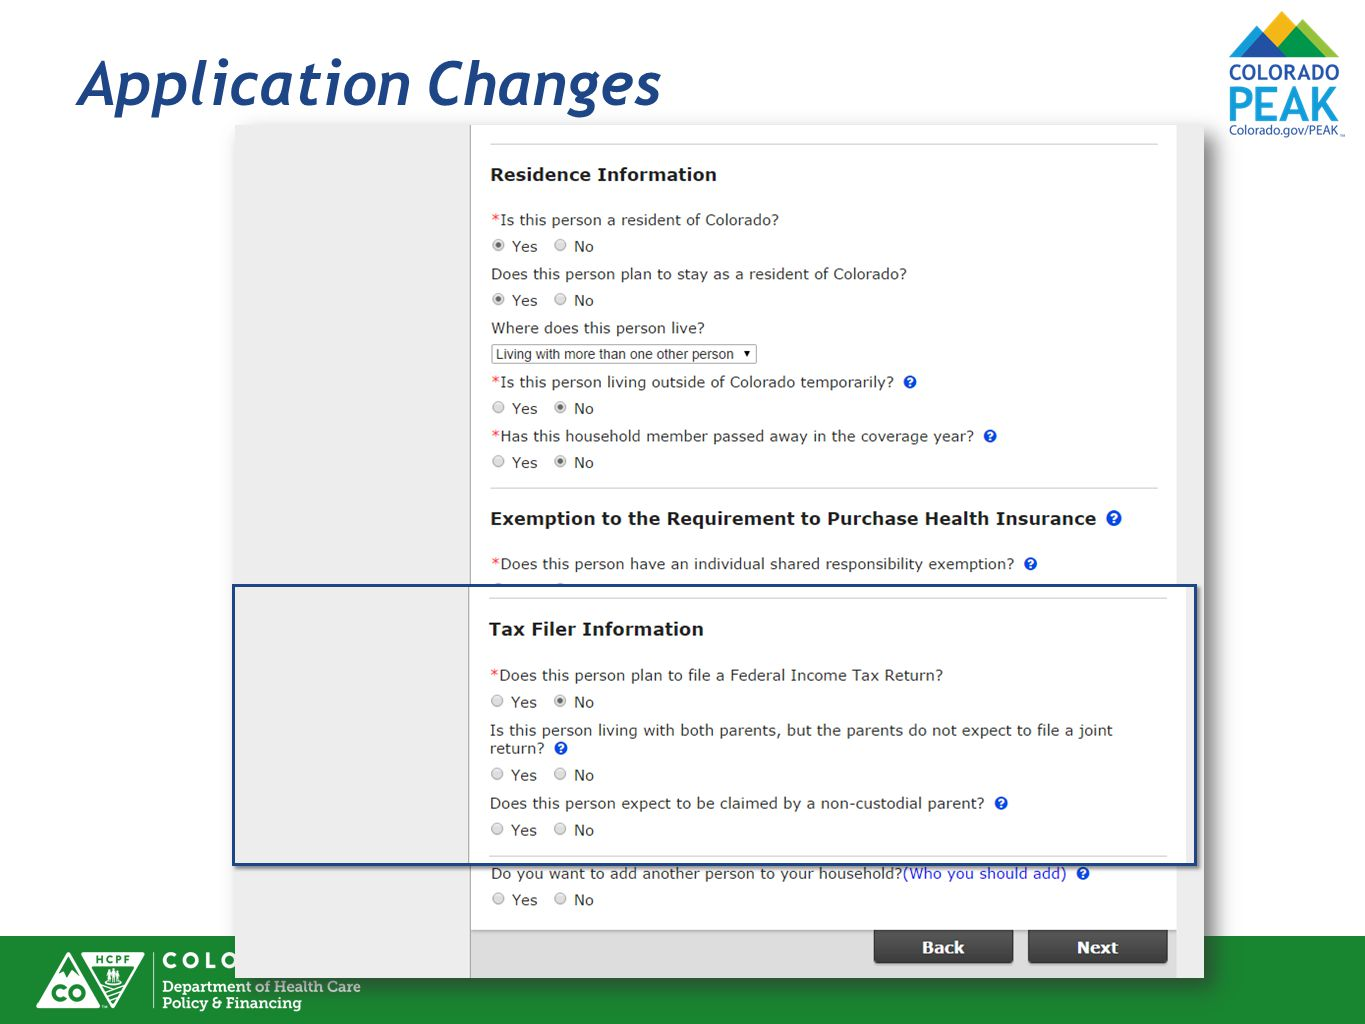 Application Changes Changes to Tax-filer questions are aligned with IRS and intuitive – showing both yes and no options.